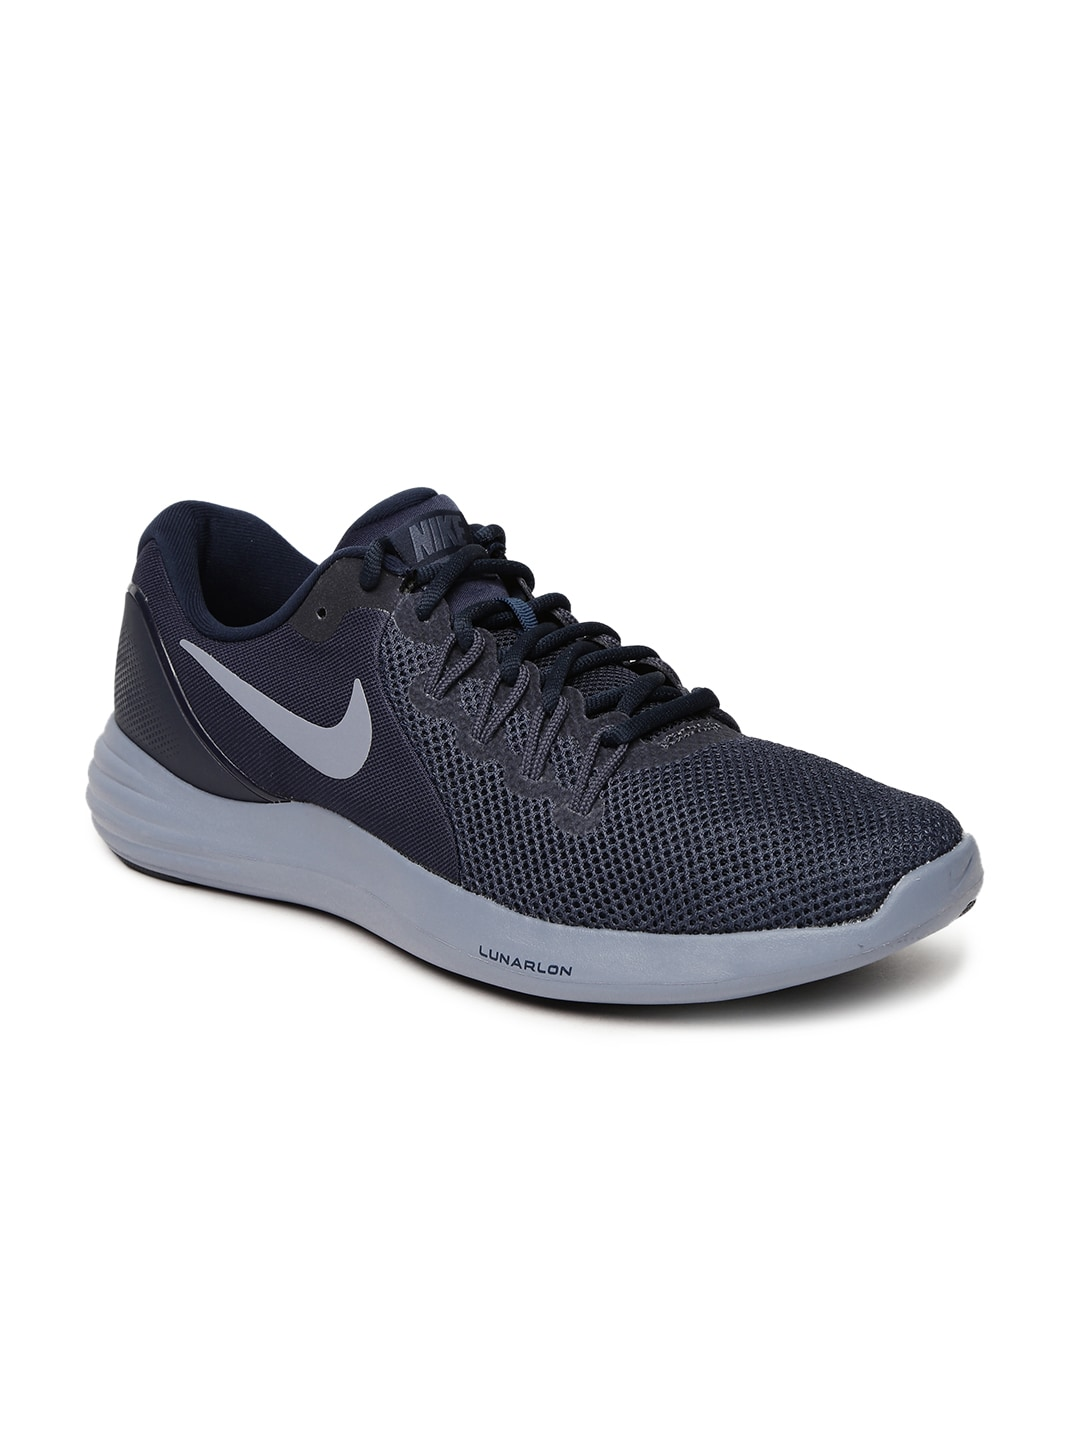 Nike Shoes - Buy Nike Shoes for Men   Women Online  8702feaeb821